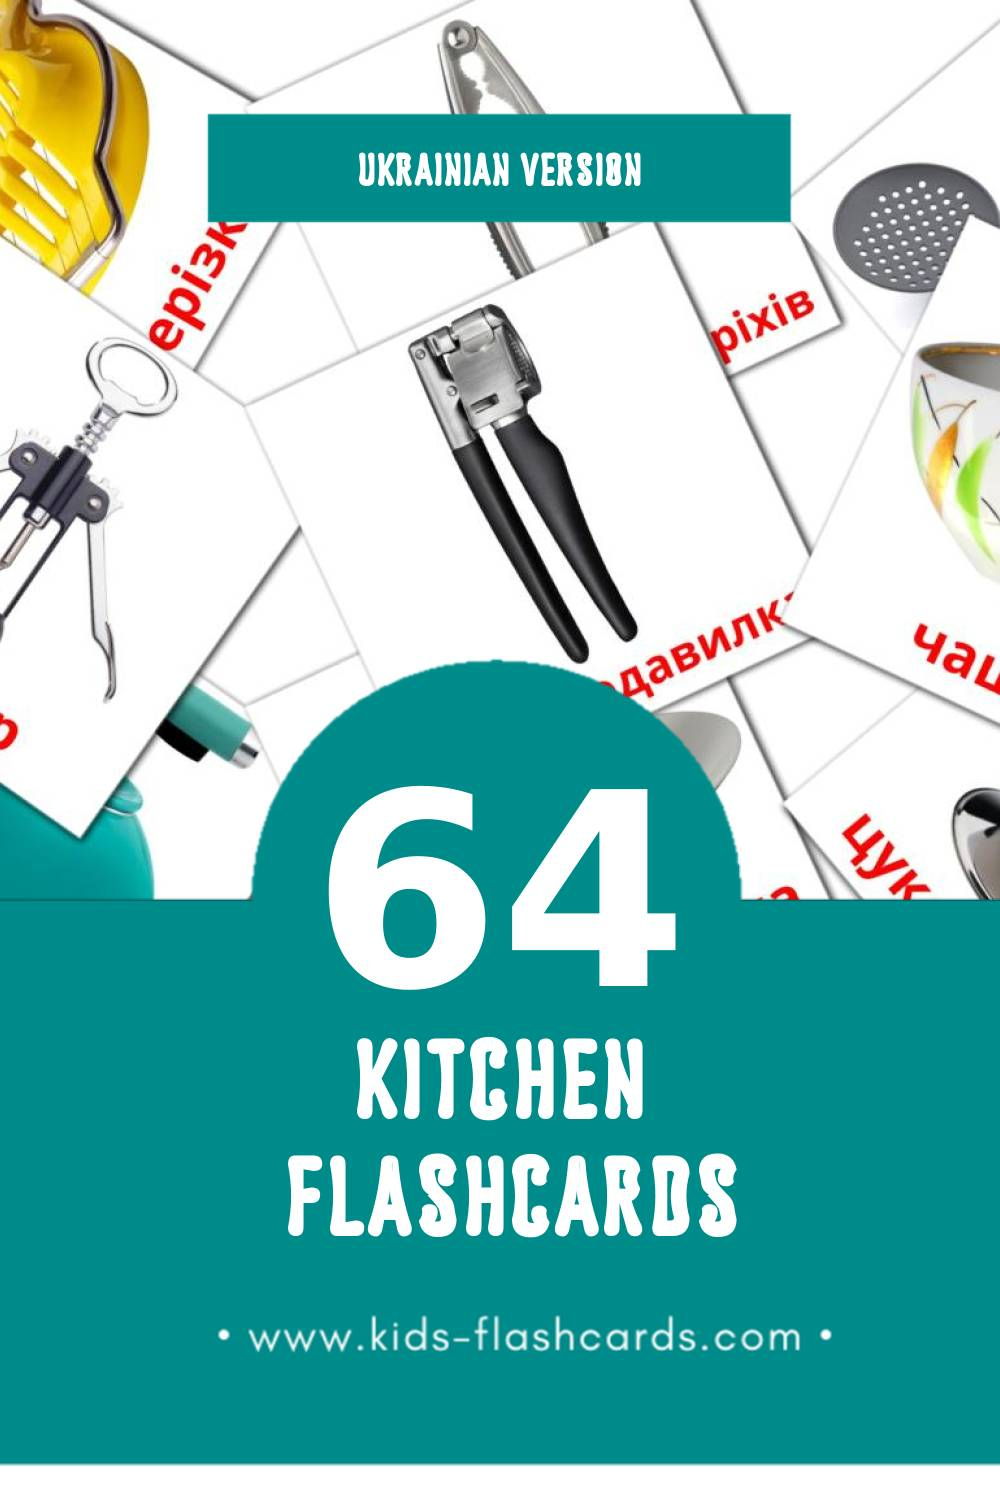 Visual Кухня Flashcards for Toddlers (64 cards in Ukrainian)